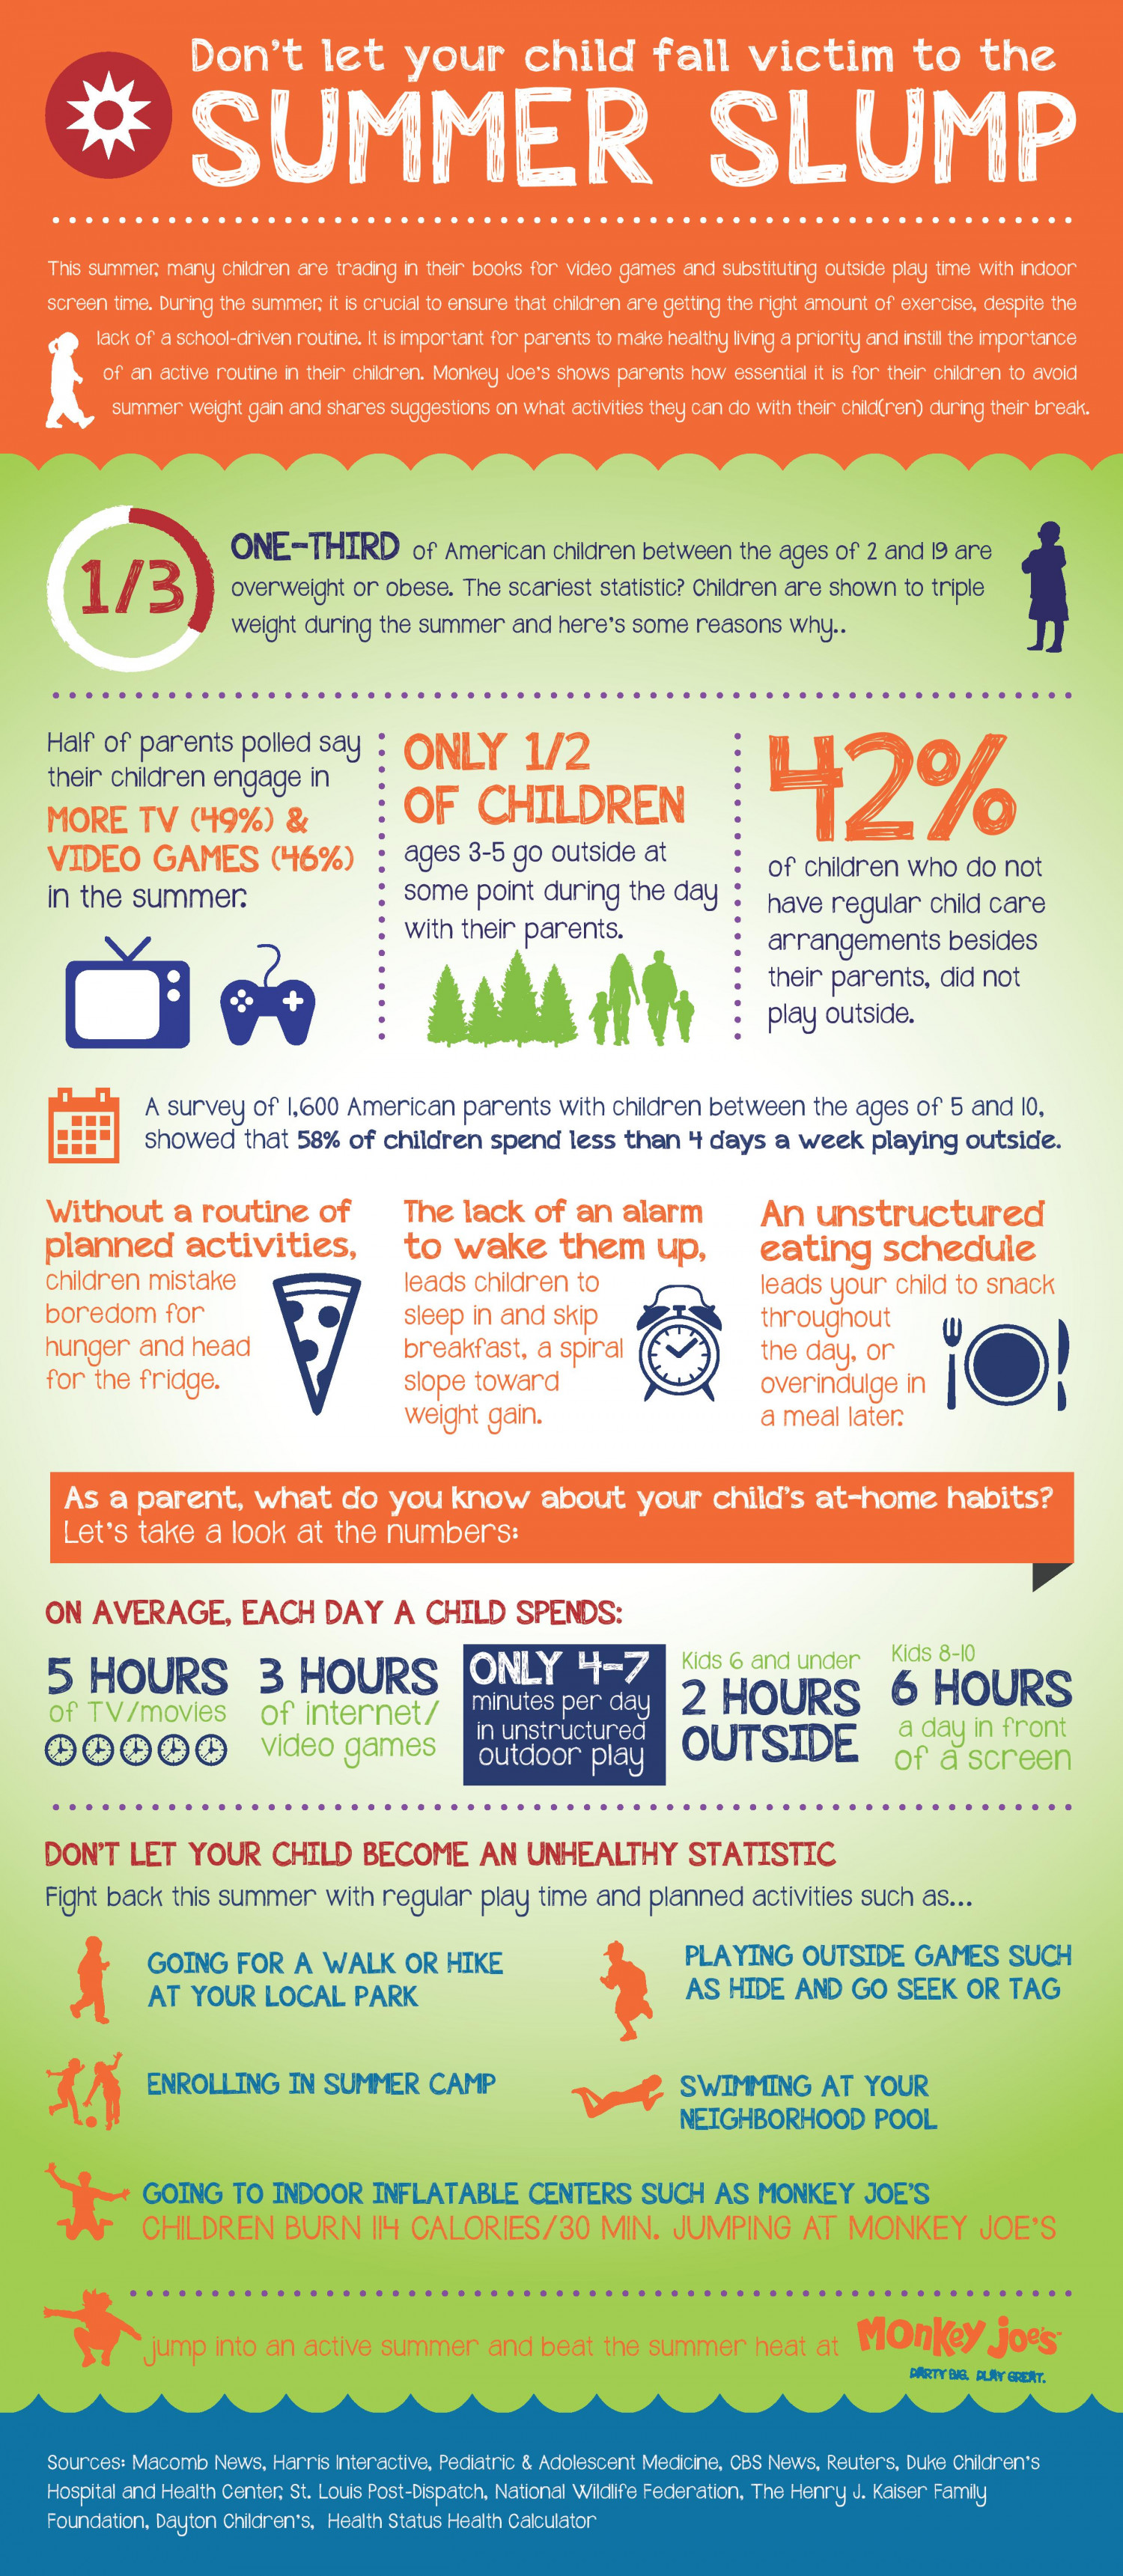 Don't Let Your Child Fall Victim to the Summer Slump Infographic